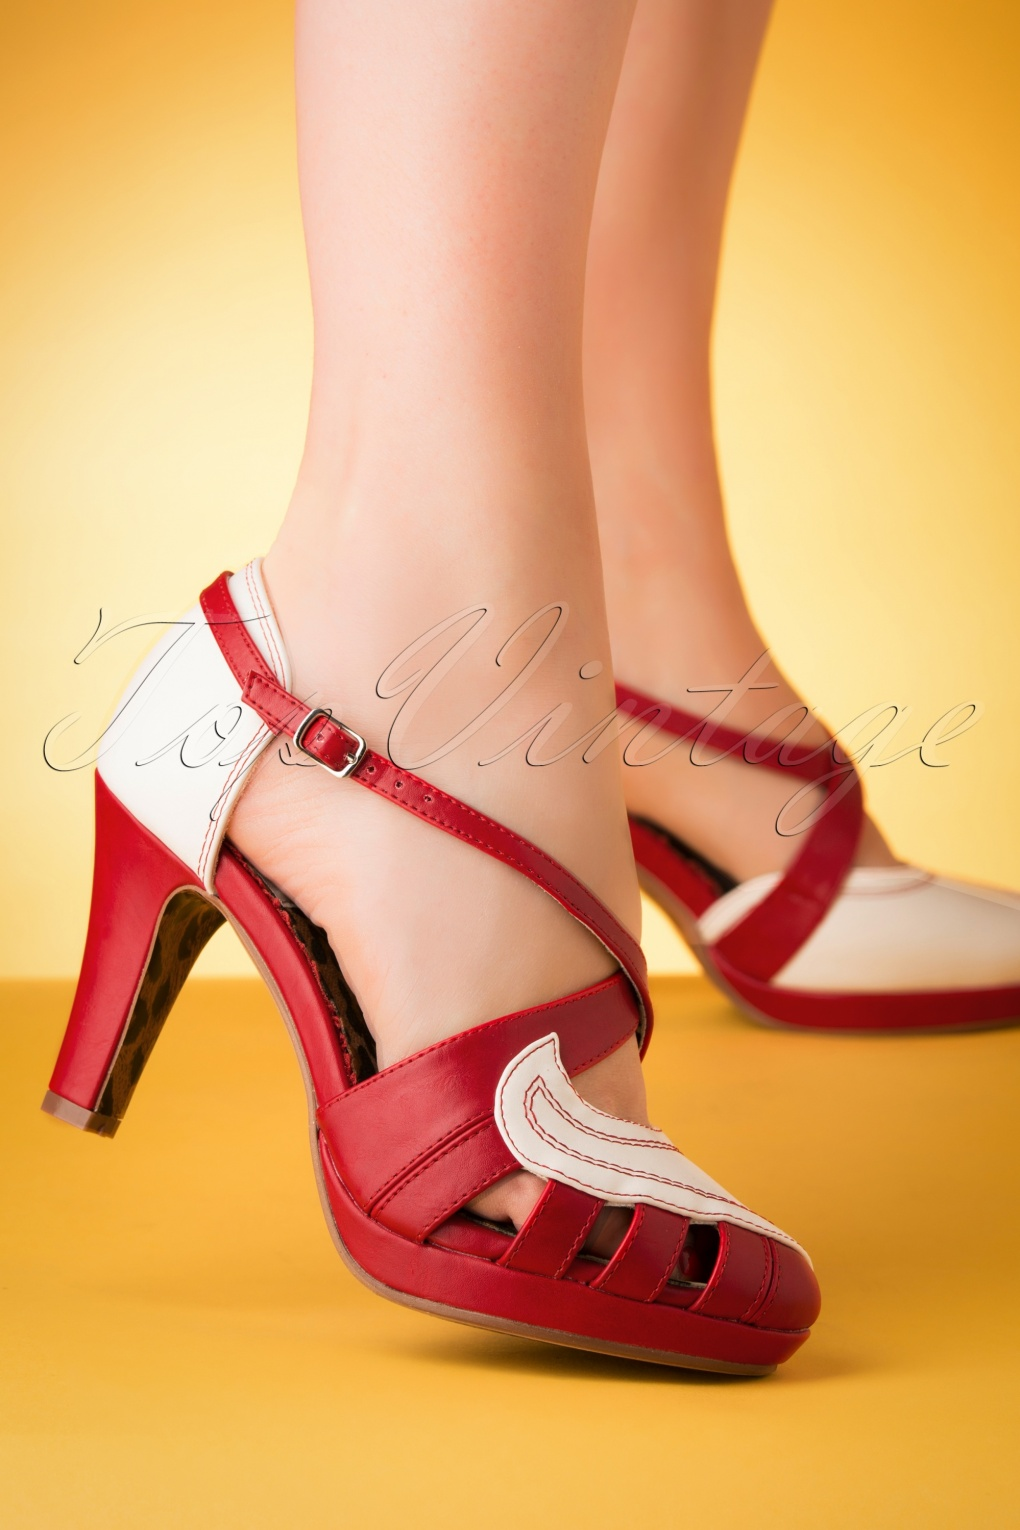 Pin Up Shoes- Heels, Pumps & Flats 50s Angie Pumps in White and Red �66.44 AT vintagedancer.com